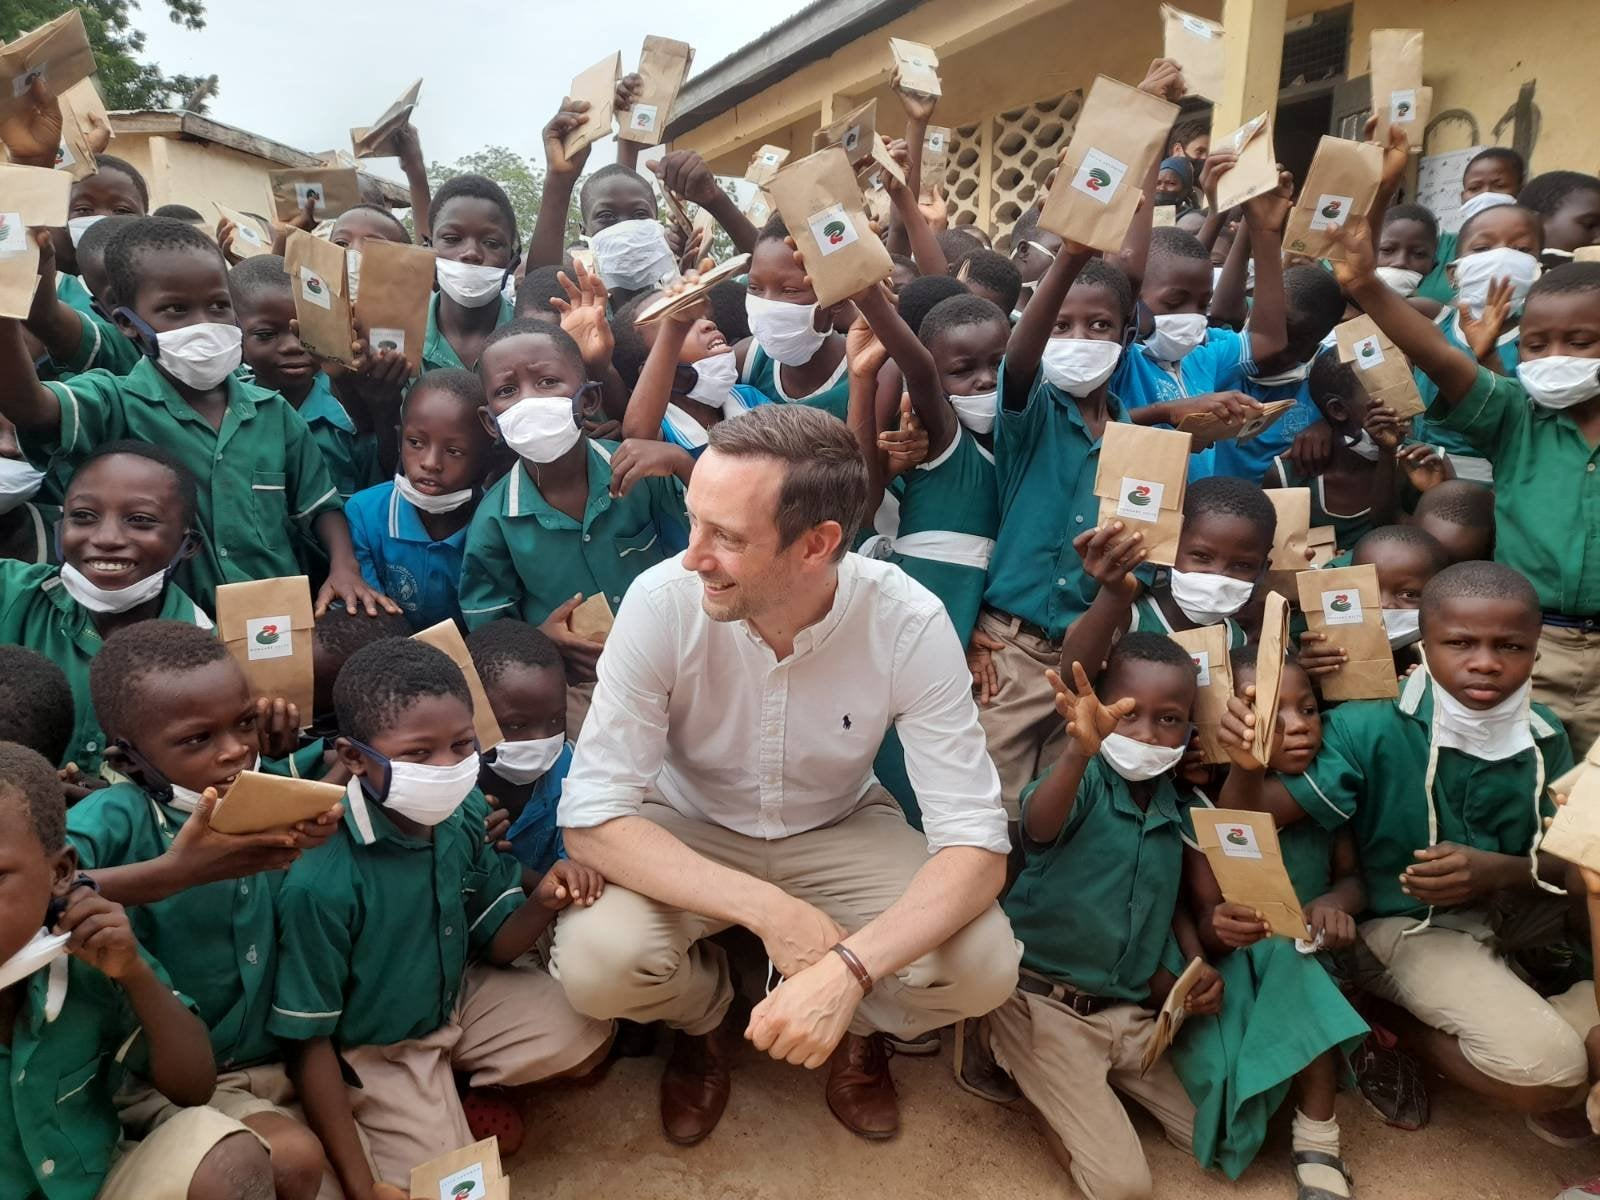 Hungary helps Africa